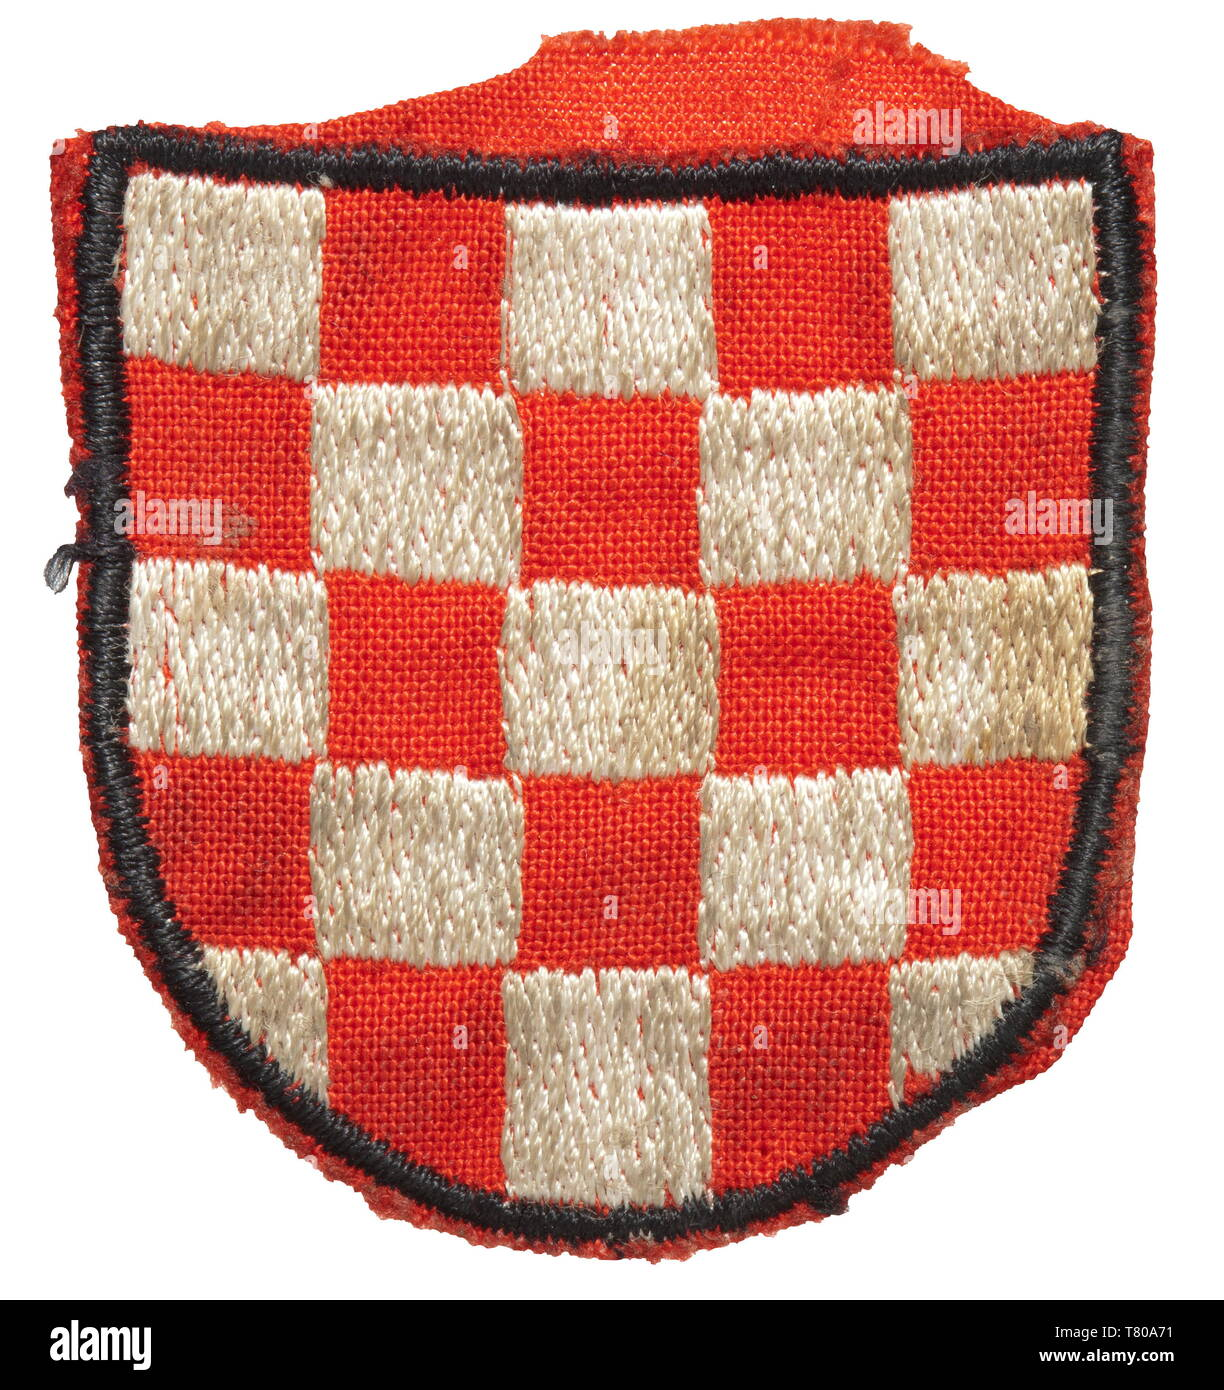 "A sleeve shield for Croatian volunteers in the 13th Waffen Mountain Division of the SS ""Handschar"" (Croatian no. 1) or the 23rd Waffen Mountain Division of the SS ""Kama"" (Estonian no. 2). Machine-embroidered issue in red cotton cloth. historic, historical, 20th century, 1930s, 1940s, secret service, security service, secret services, security services, police, armed service, armed services, NS, National Socialism, Nazism, Third Reich, German Reich, Germany, utensil, piece of equipment, utensils, object, objects, stills, clipping, clippings, cut out, cut-out, cut-outs, fasci, Editorial-Use-Only Stock Photo"